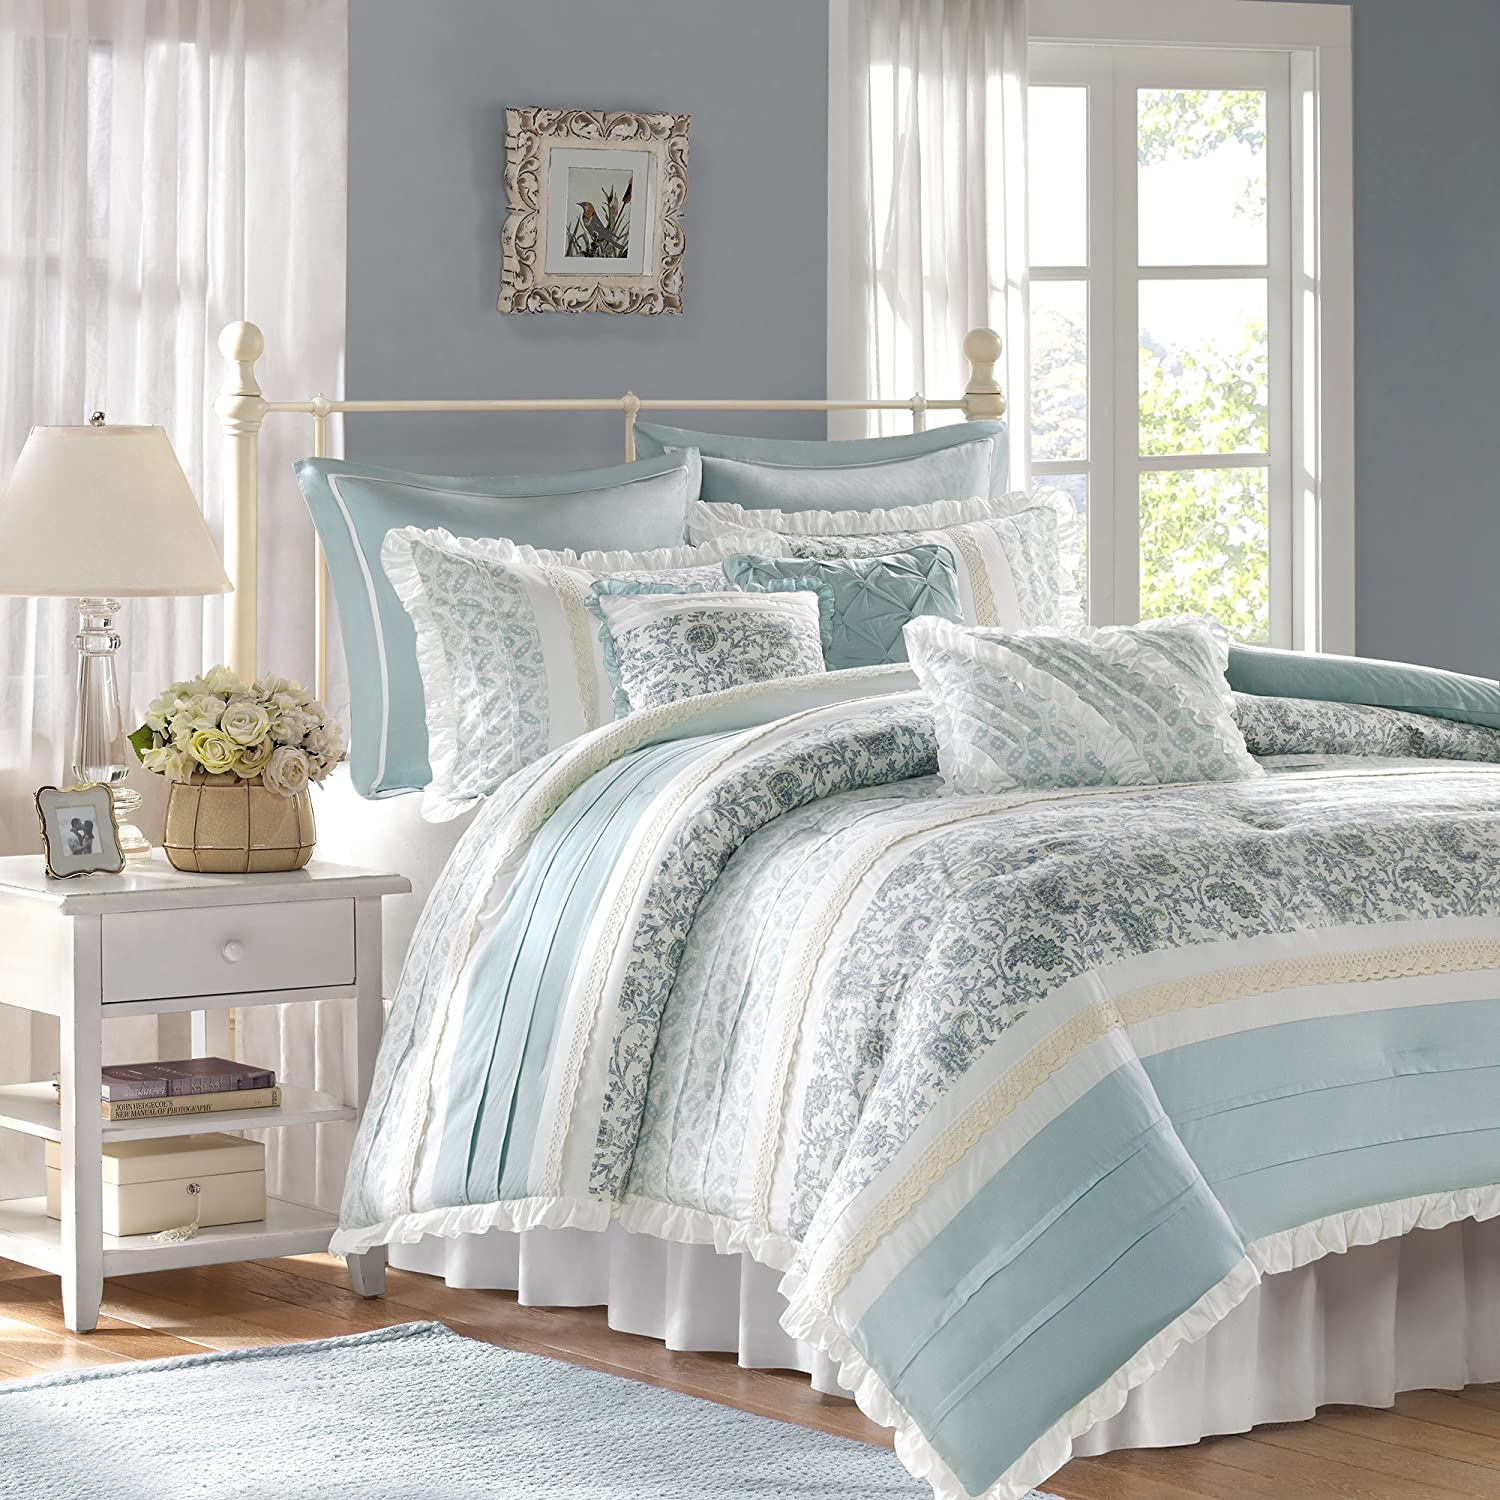 Madison Park - Dawn 9 Piece Cotton Percale Comforter Set - Blue - Queen - Shabby Chic